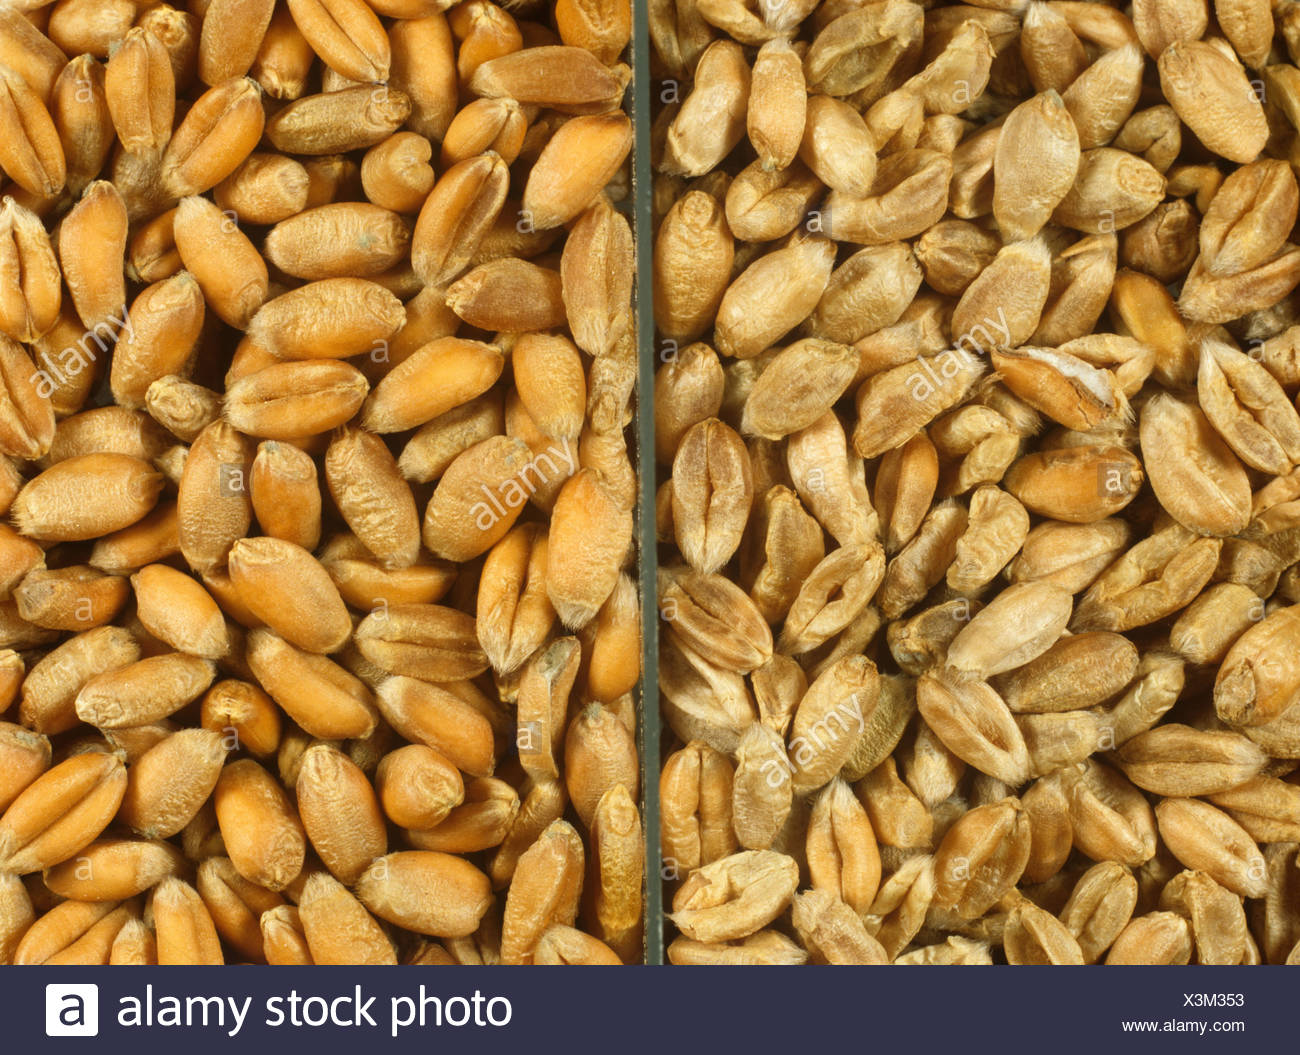 Shrivelled wheat grain from a diseased crop compared to plump healthy seed - Stock Image